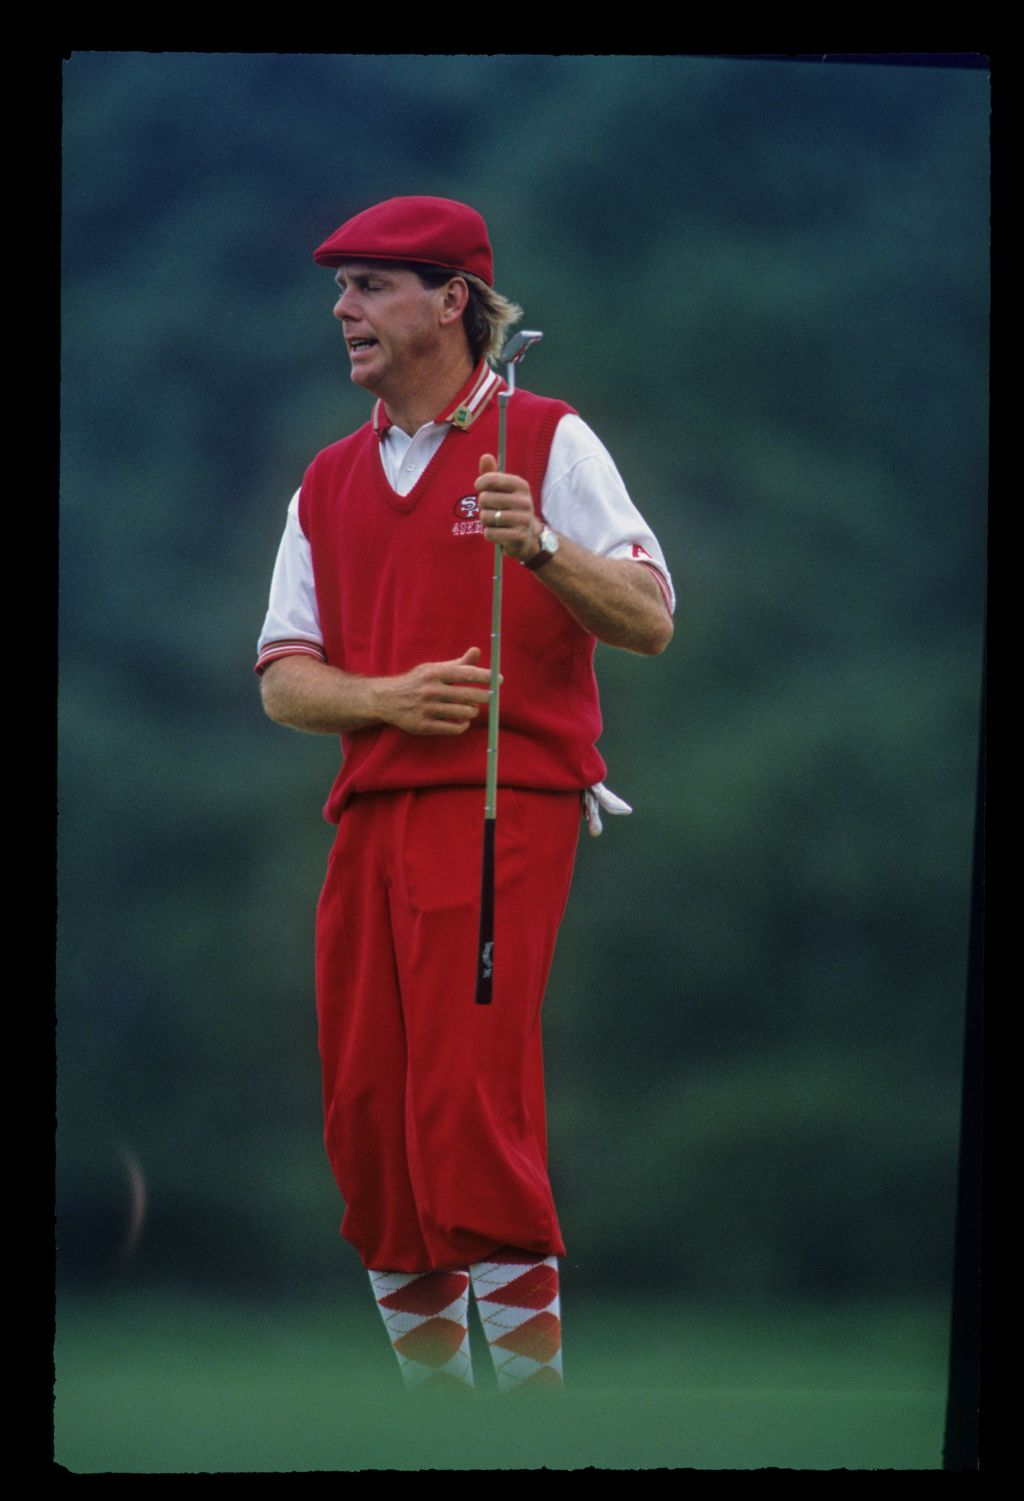 Payne Stewart showing his frustration on the green during the 1993 Masters